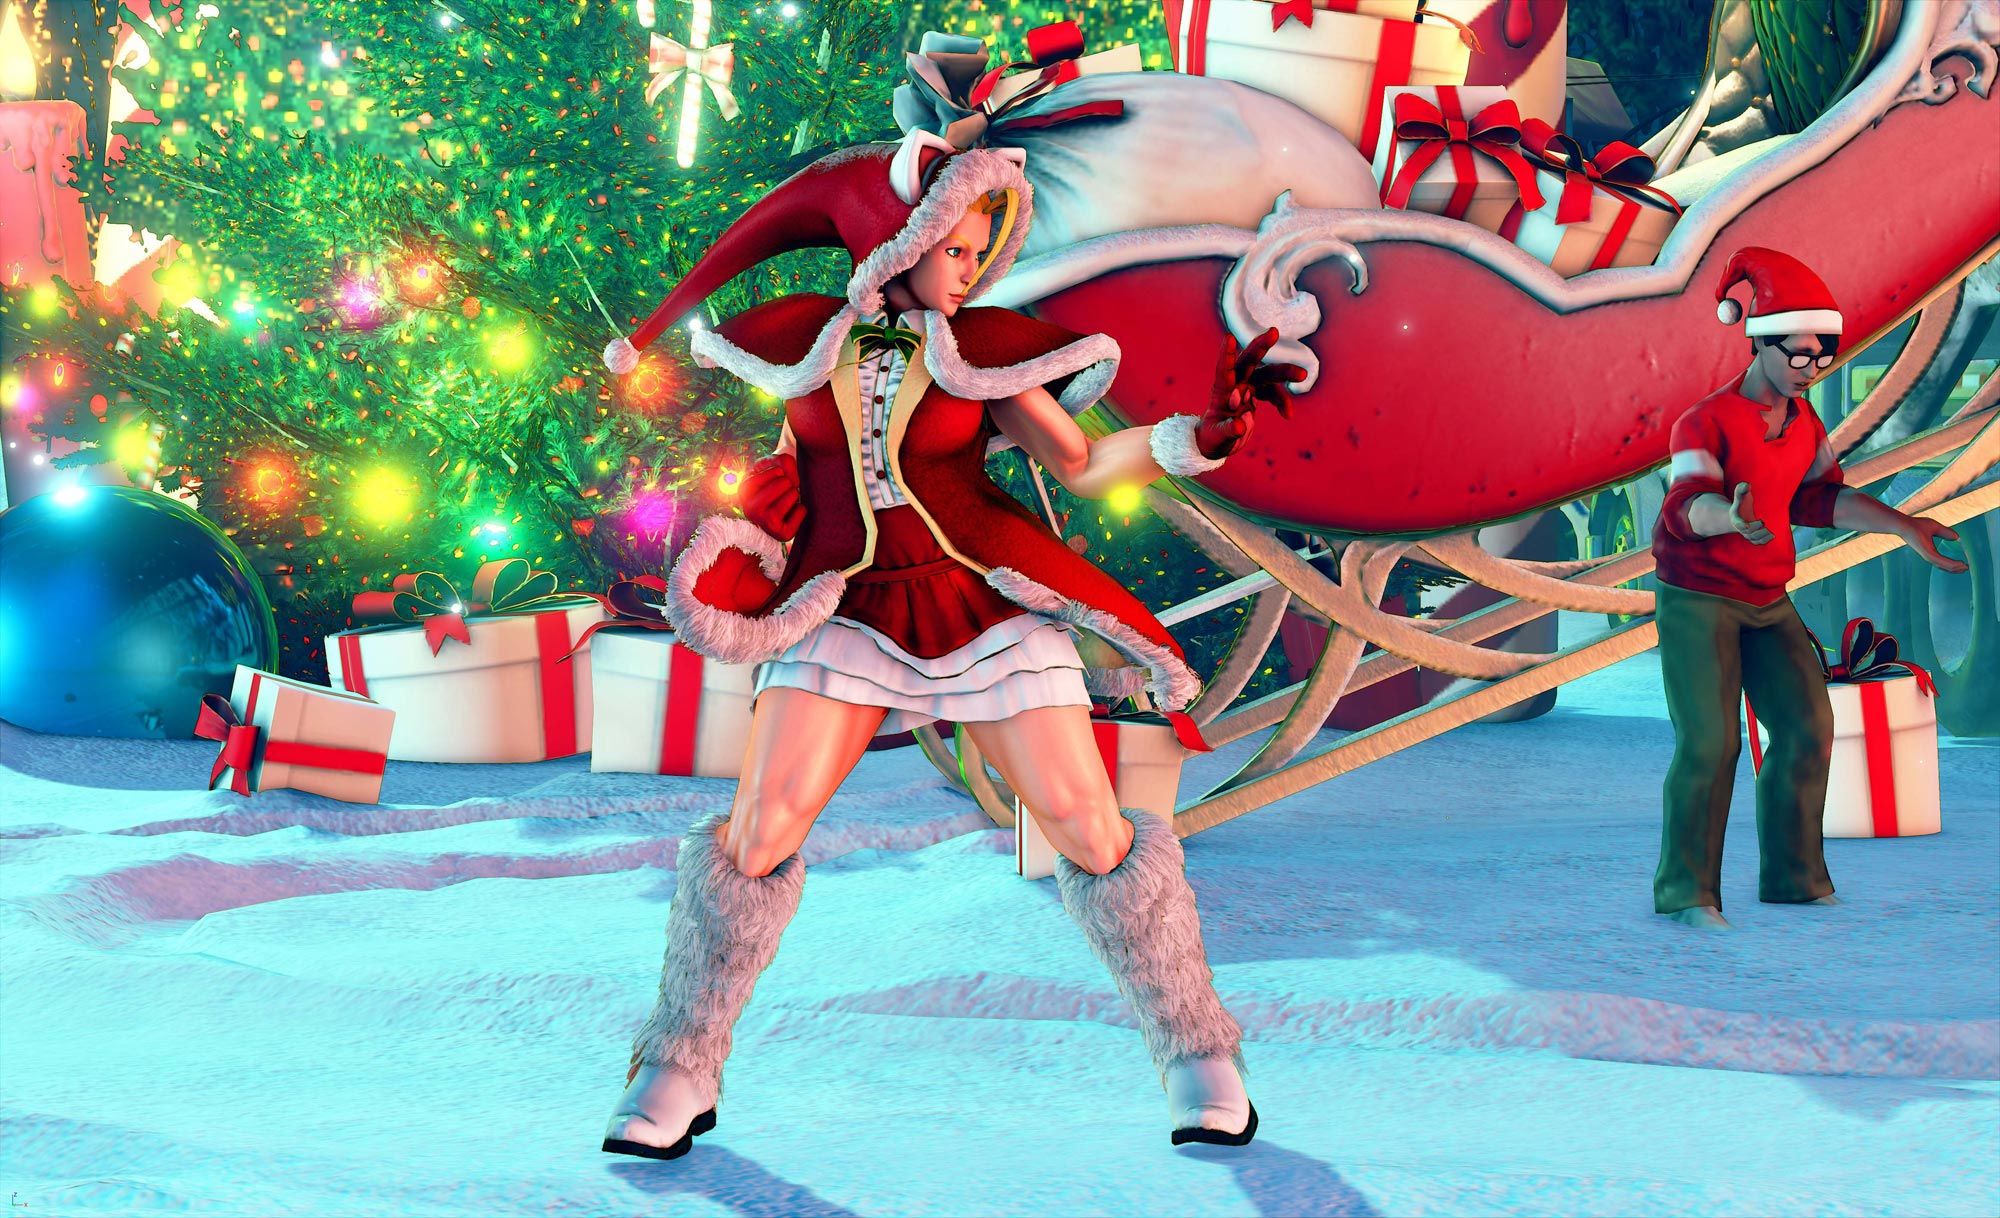 New hoilday and classic costumes in Street Fighter 5 2 out of 10 image gallery